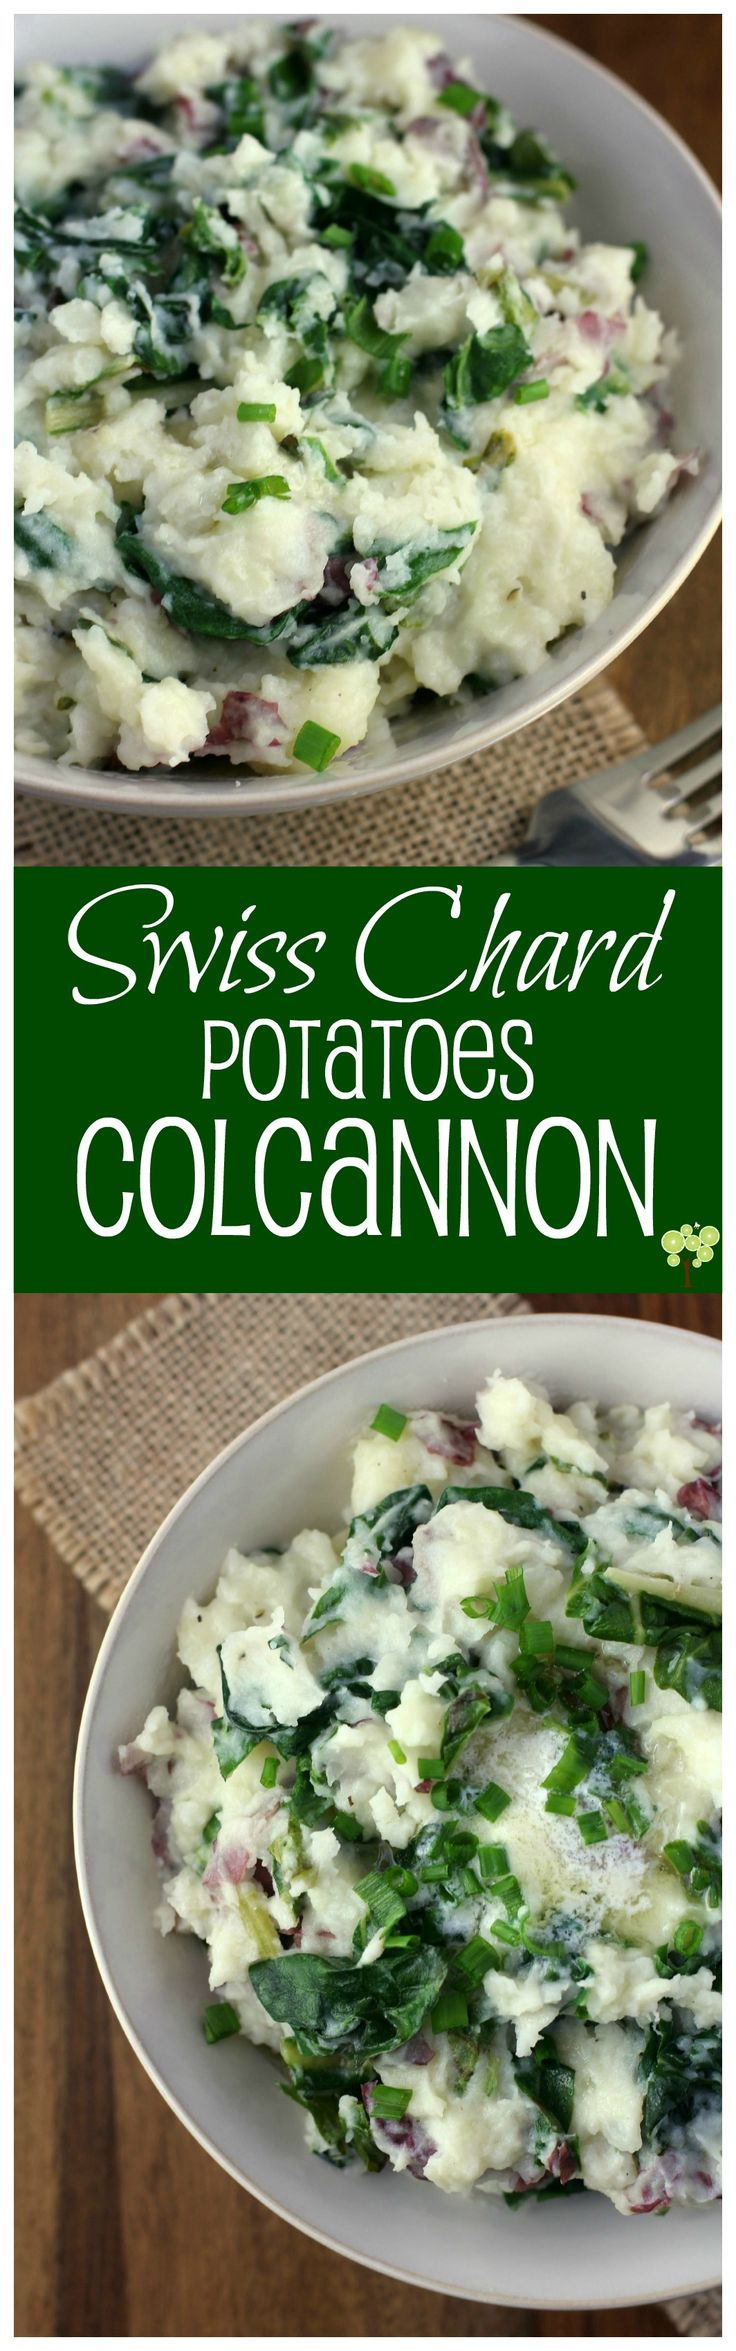 Swiss Chard Potatoes Colcannon from EricasRecipes.com